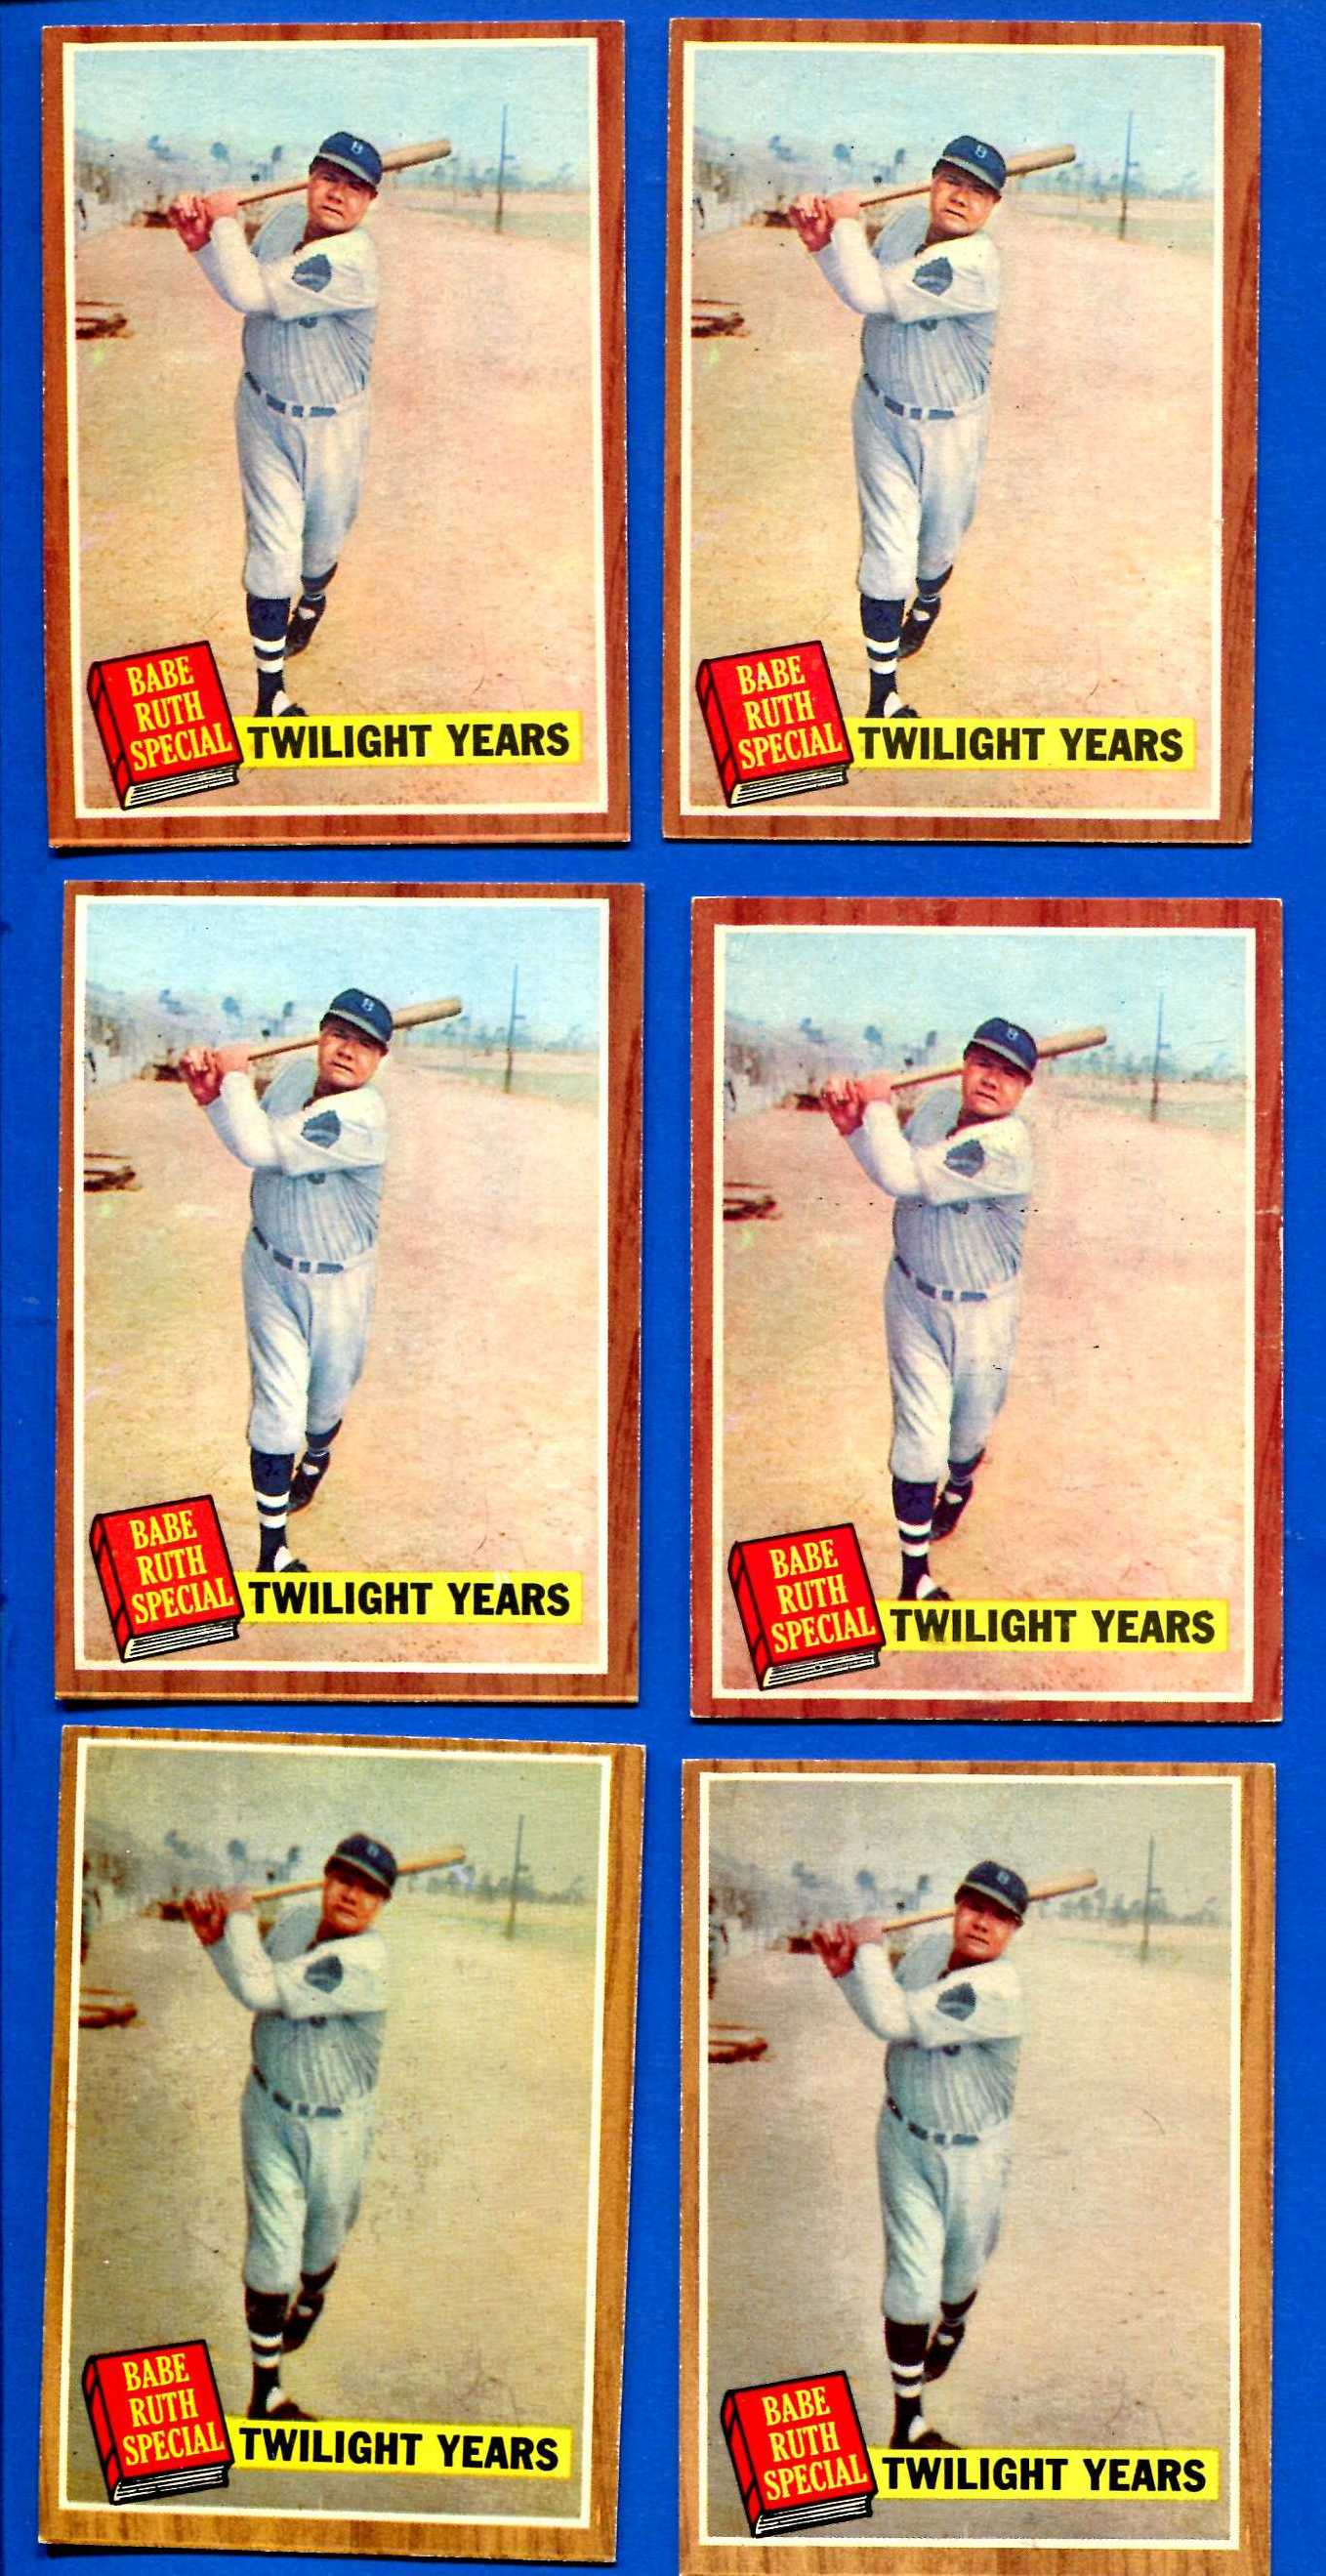 1962 Topps #141 Babe Ruth Special #7 [Green TINT] 'Twilight Years'(Yankees) Baseball cards value